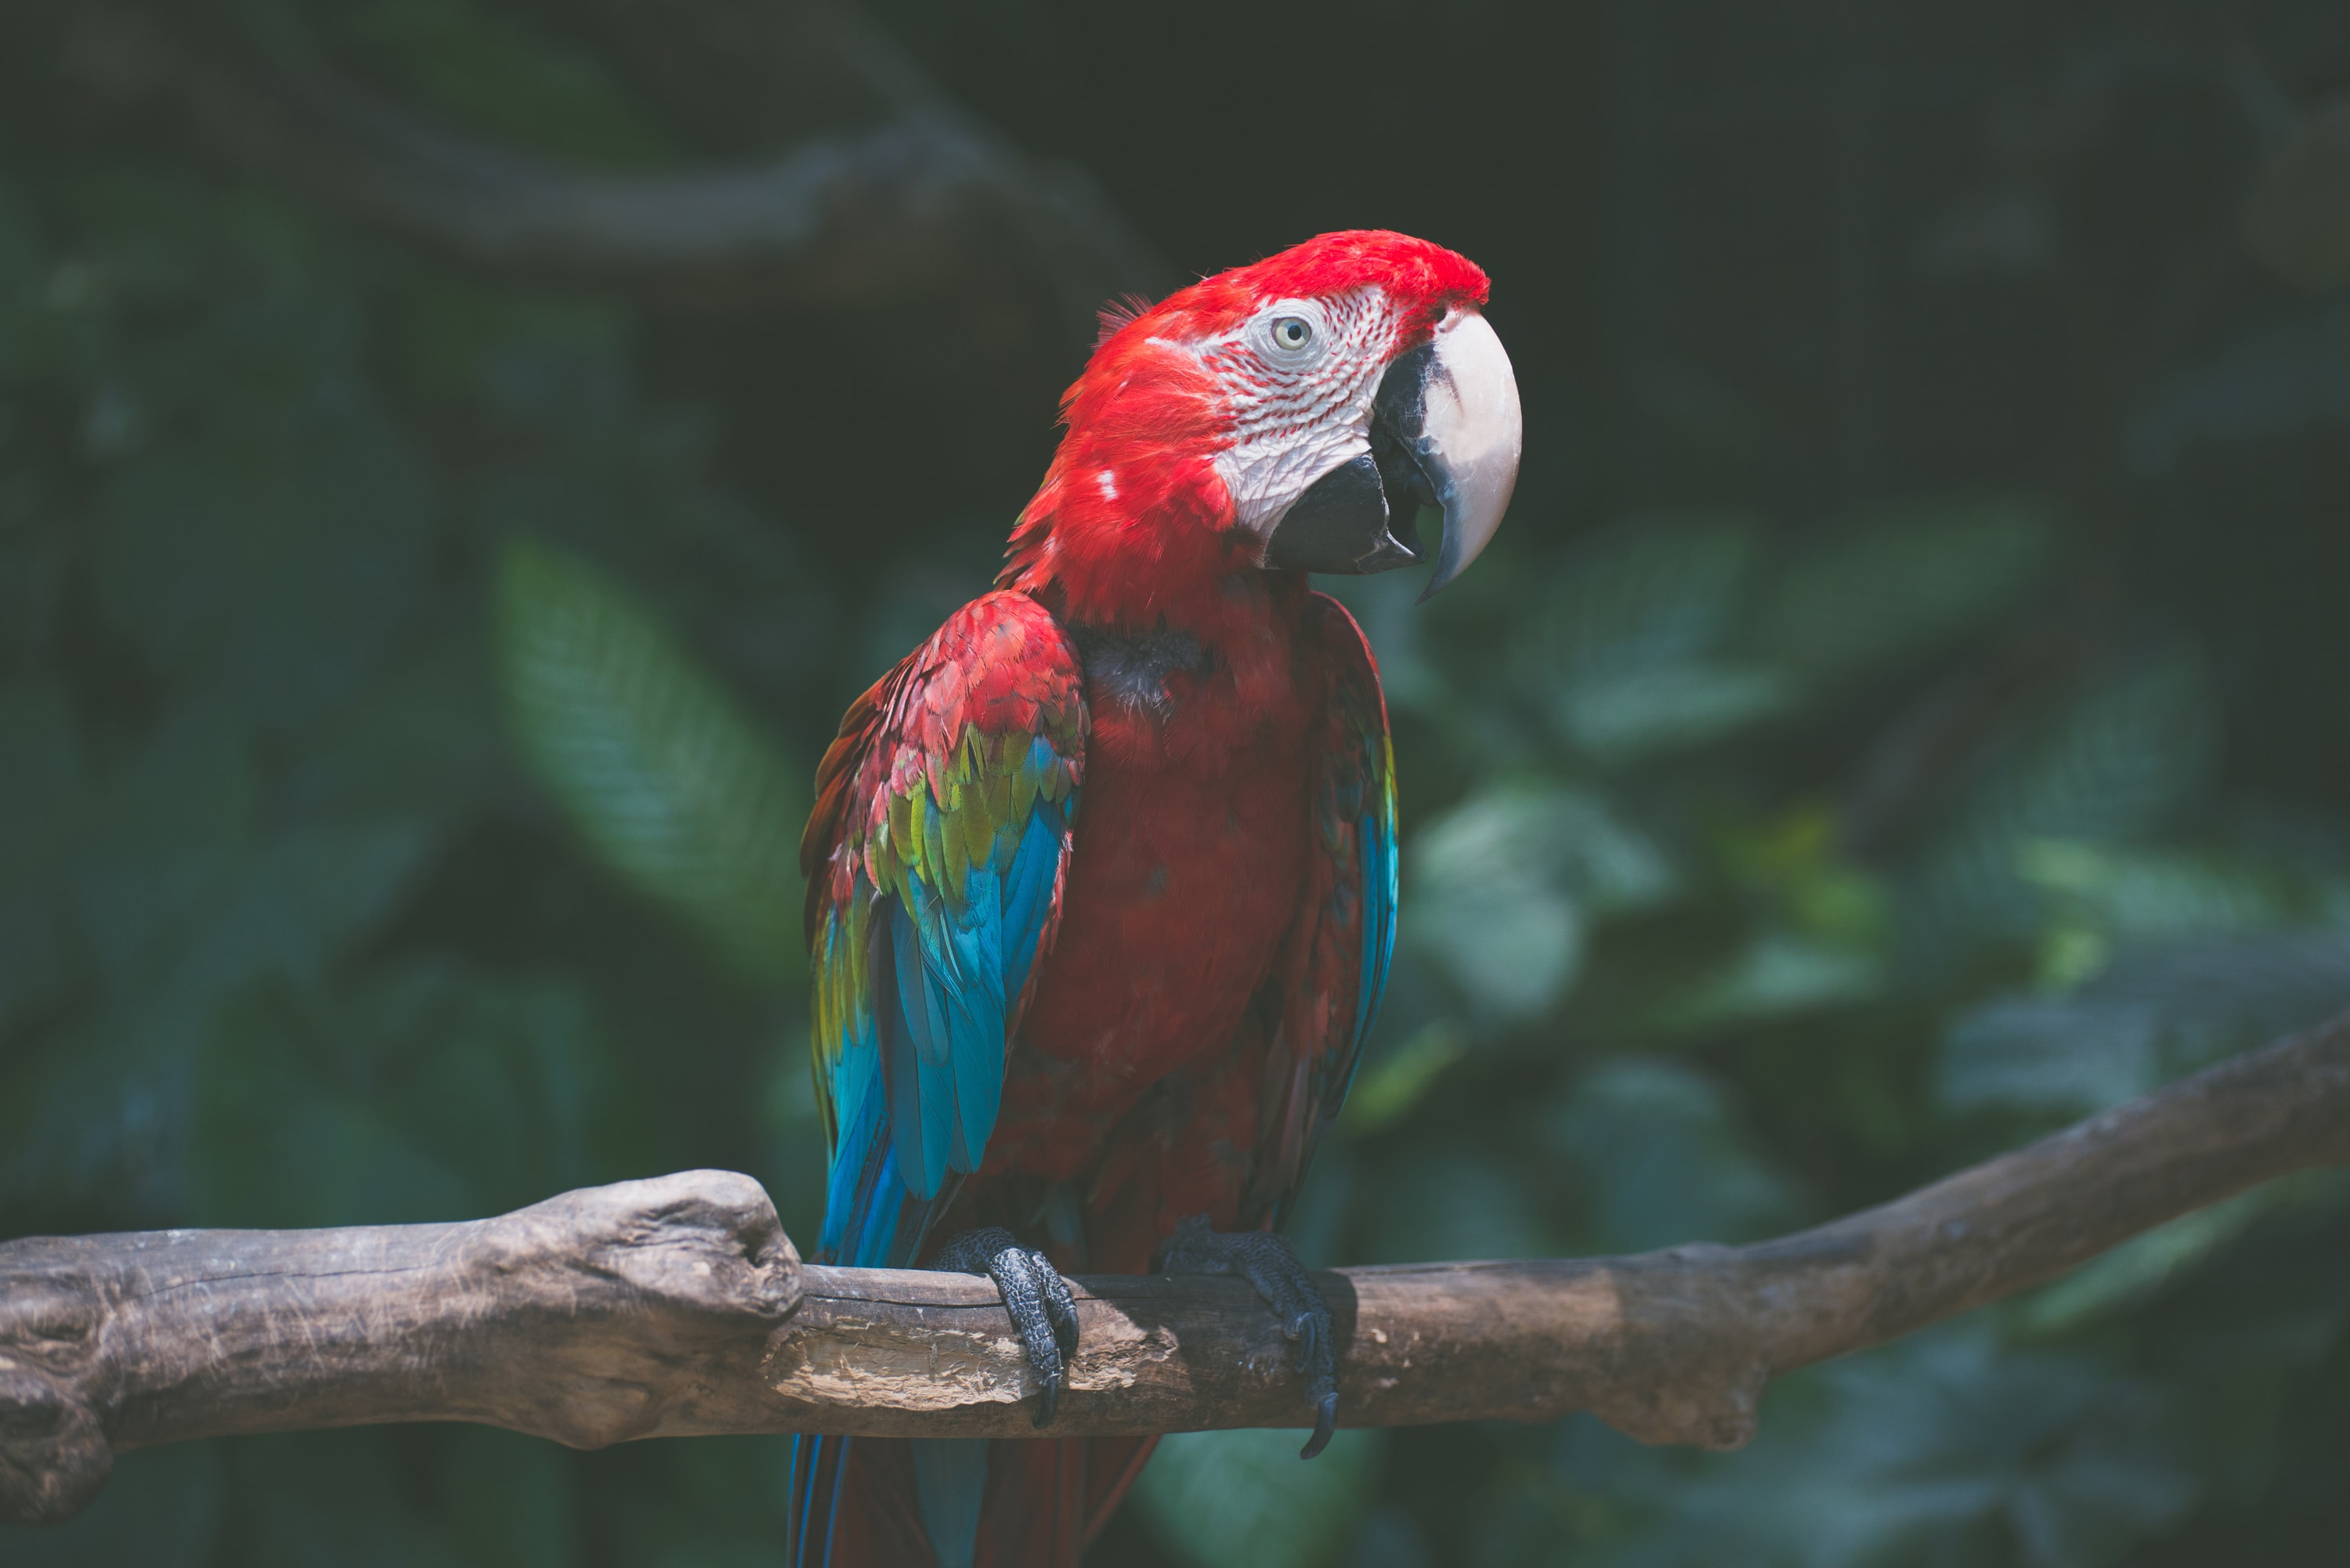 red-and-blue bird